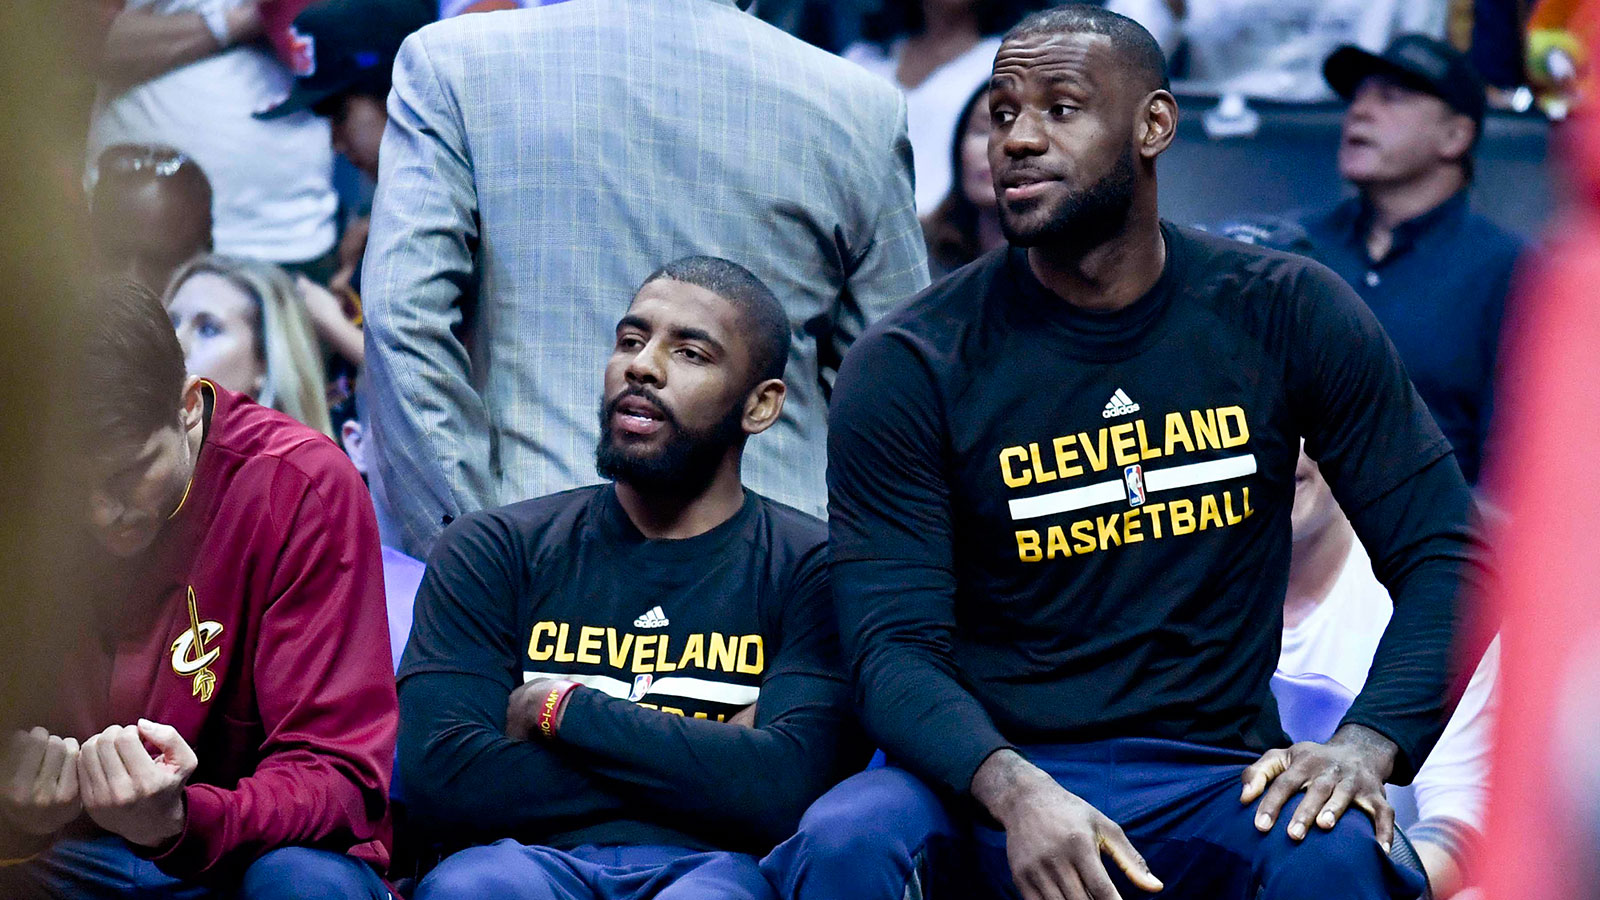 31817-NBA-LeBron-James-Kyrie-Irving-PI-AV